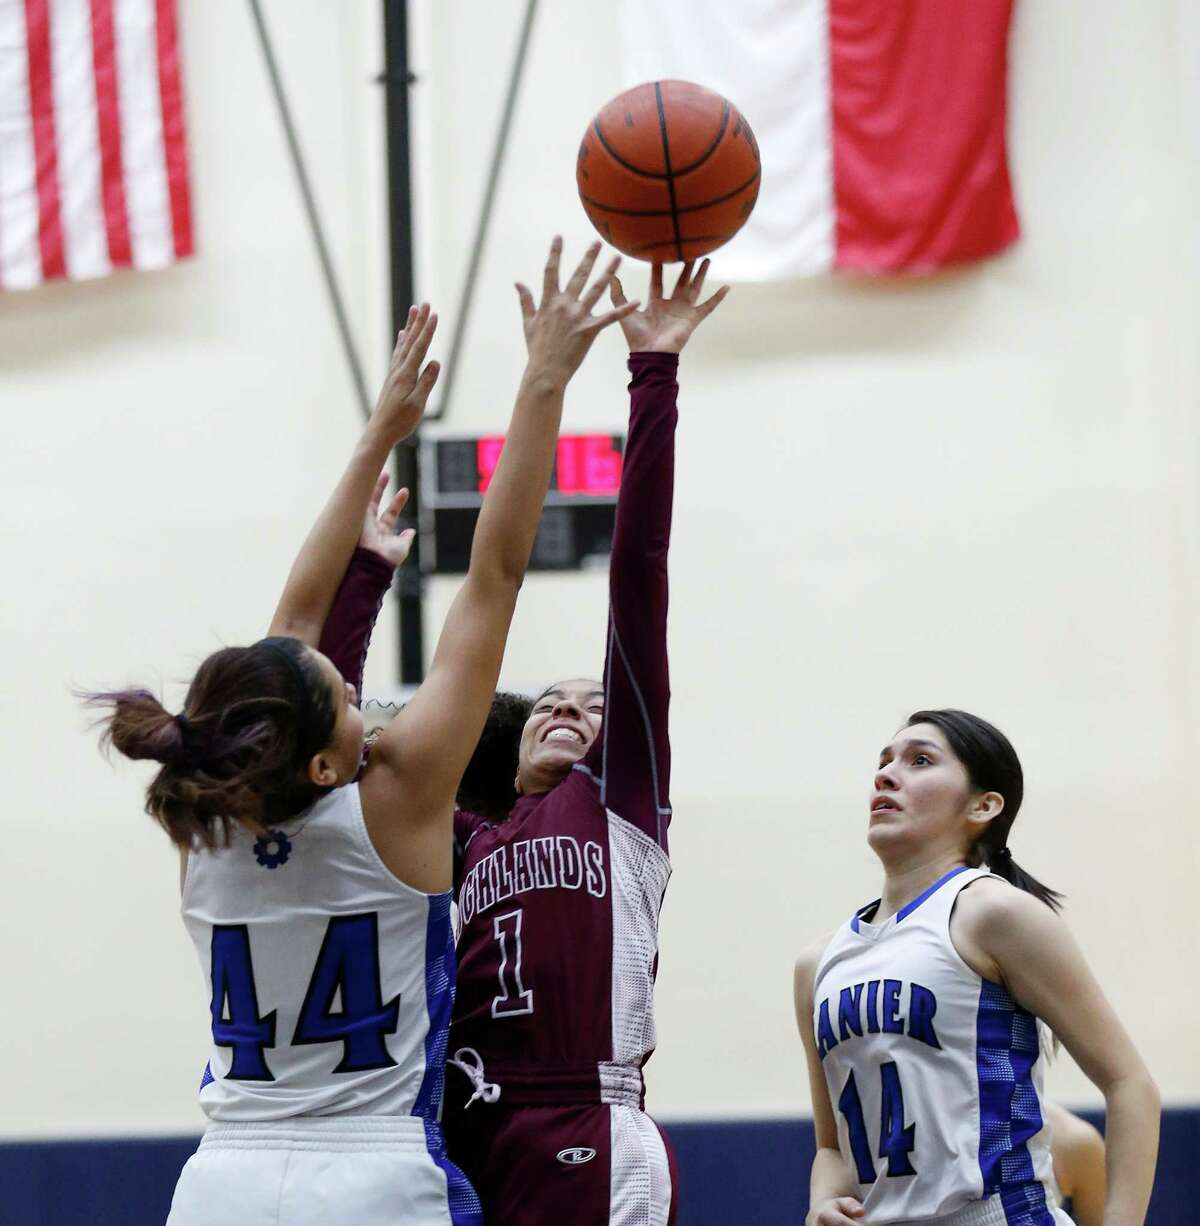 Highlands' Kiara Pesina (01) attempts a shot over Lanier's Cheyenne Torres (44) in girls basketball at the Alamo Convocation Center on Friday, Jan. 29, 2016. Lanier rallied to defeat Highlands, 66-62. (Kin Man Hui/San Antonio Express-News)